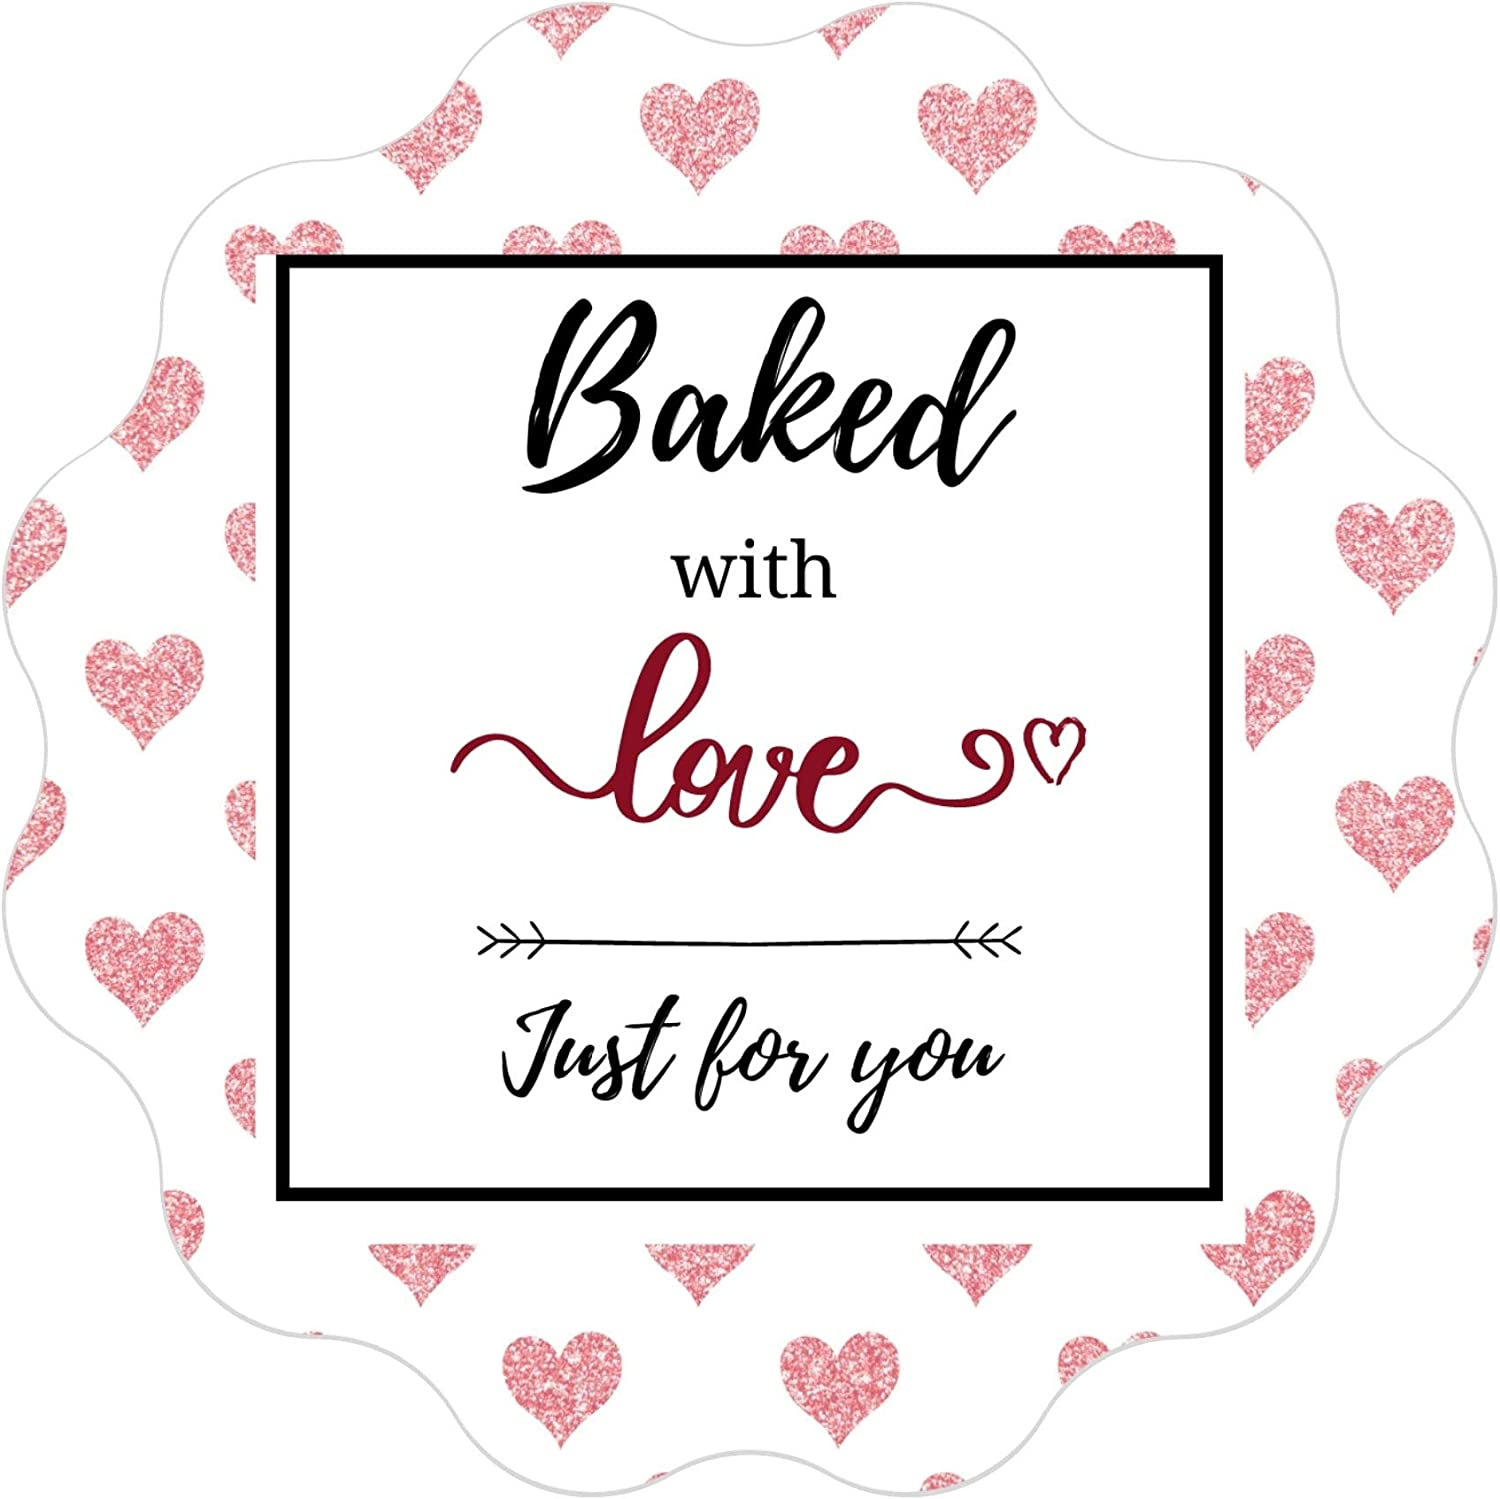 Mobiusea Creation Baked with Love Stickers Roll | Scalloped Cut | Waterproof | 1.5 inch | 500 Labels for Cookie Cupcake Stickers Homemade Bakery Bread Bags Labels Baked Goods Packaging